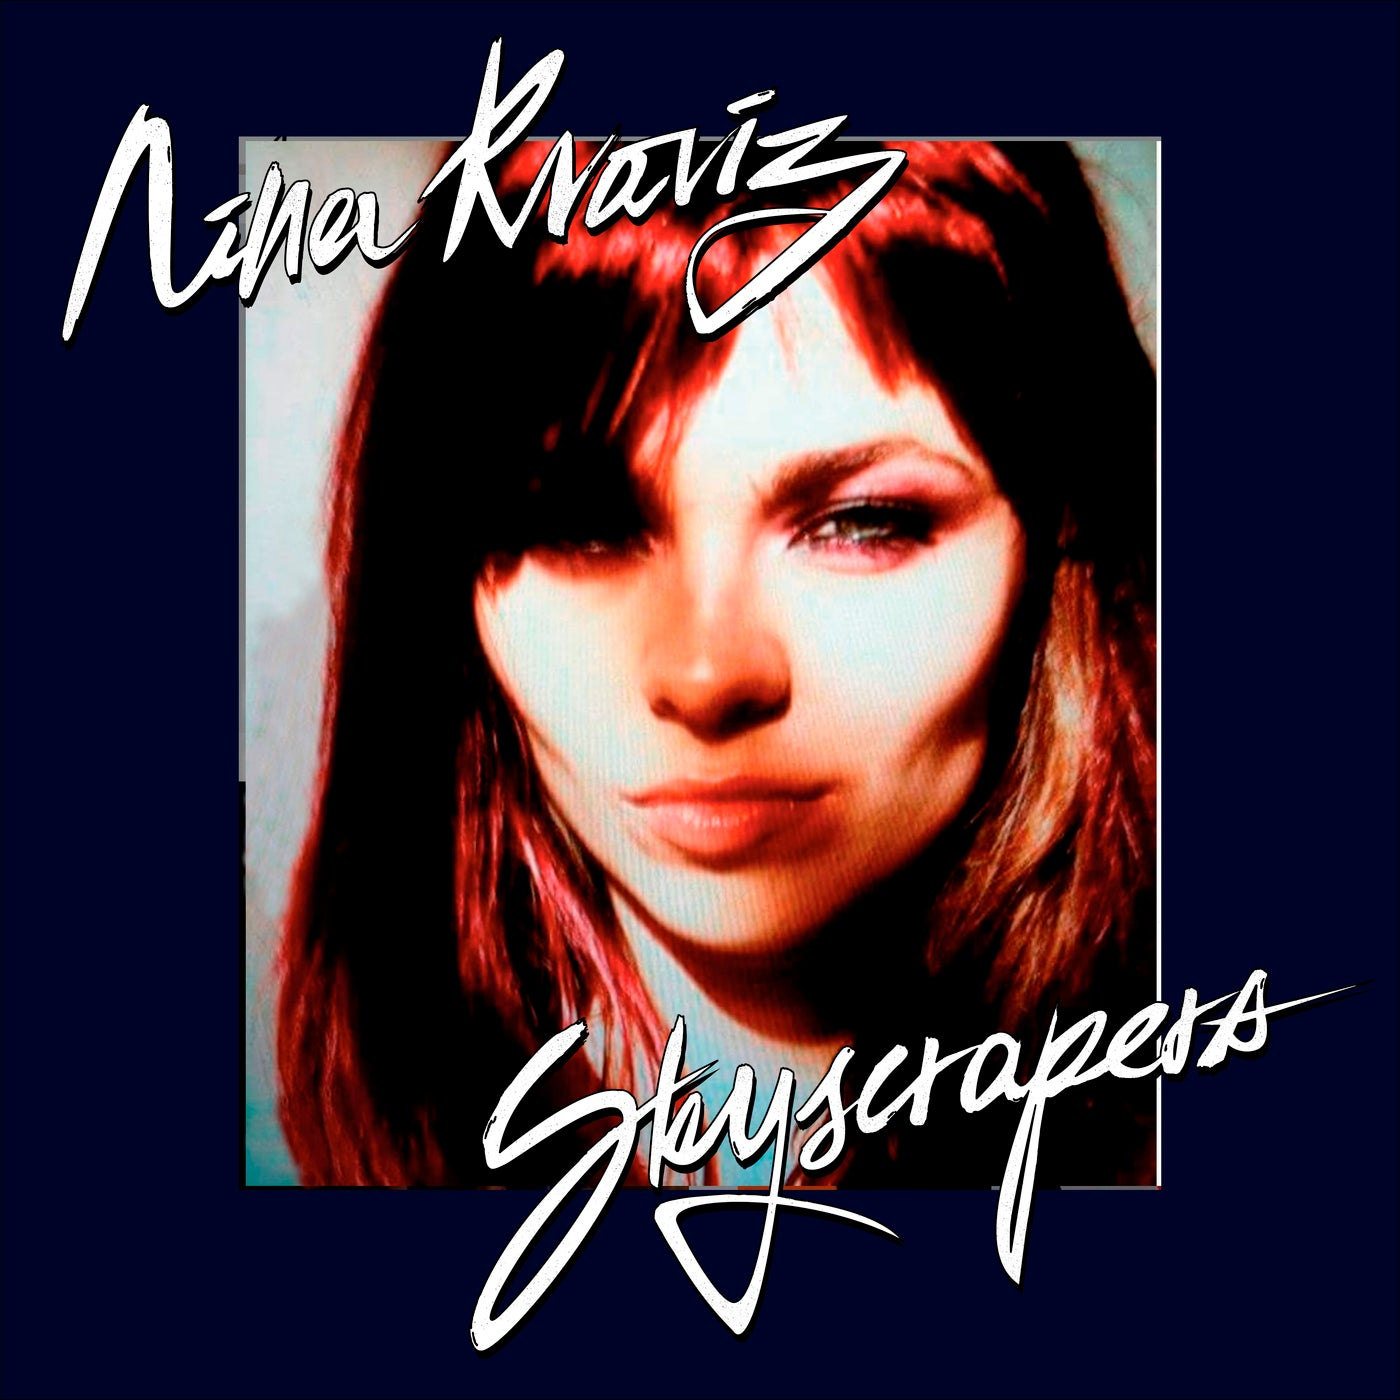 Download Skyscrapers on Electrobuzz